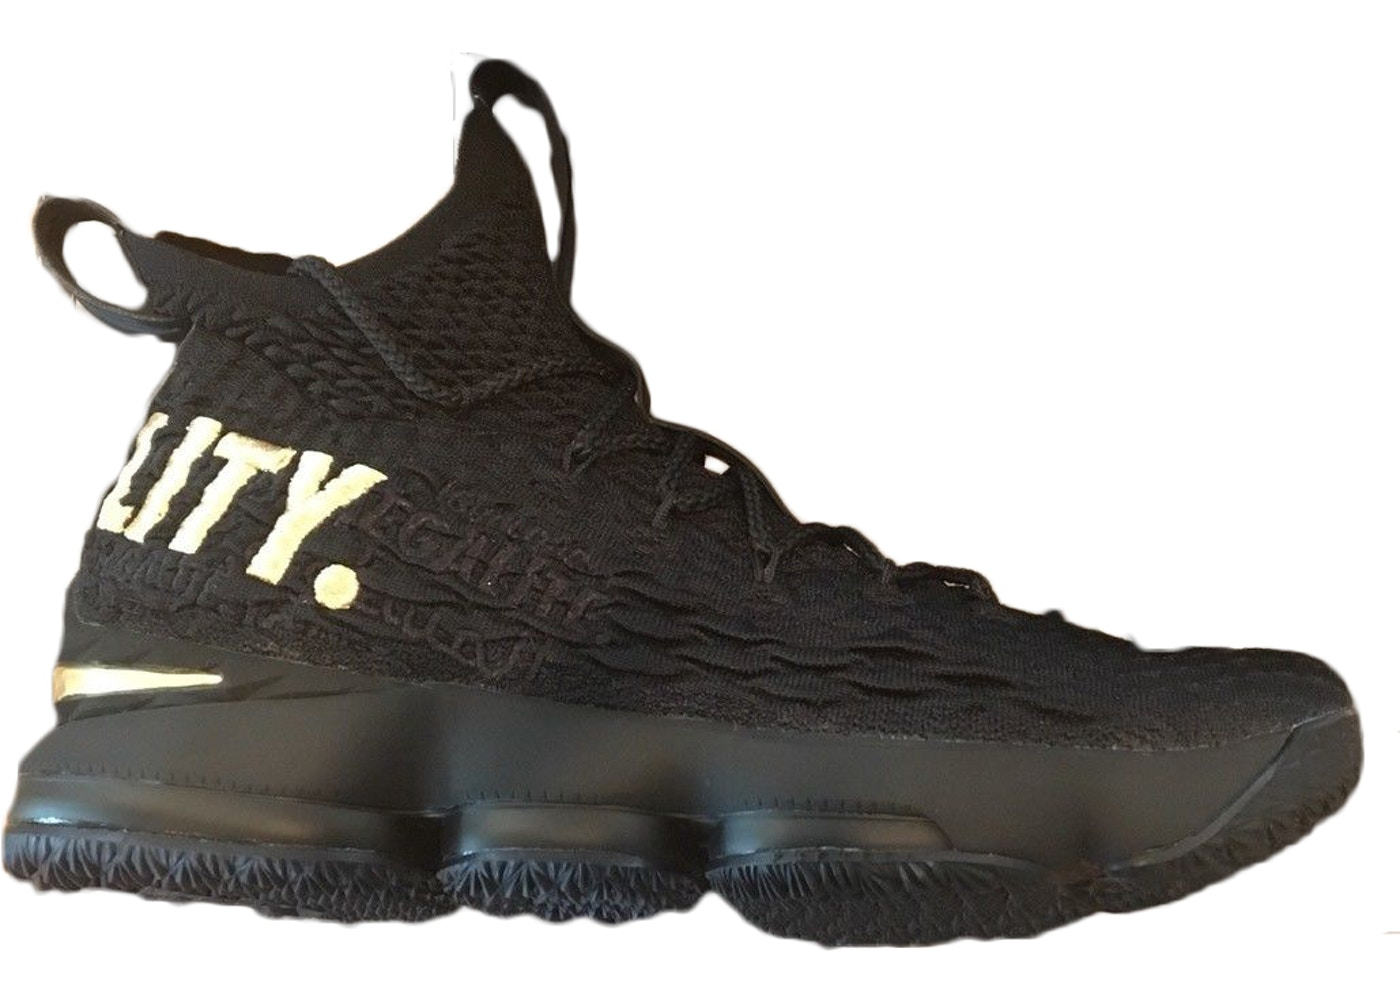 0abc81f90e970 LeBron 15 Equality (Black) - TBD